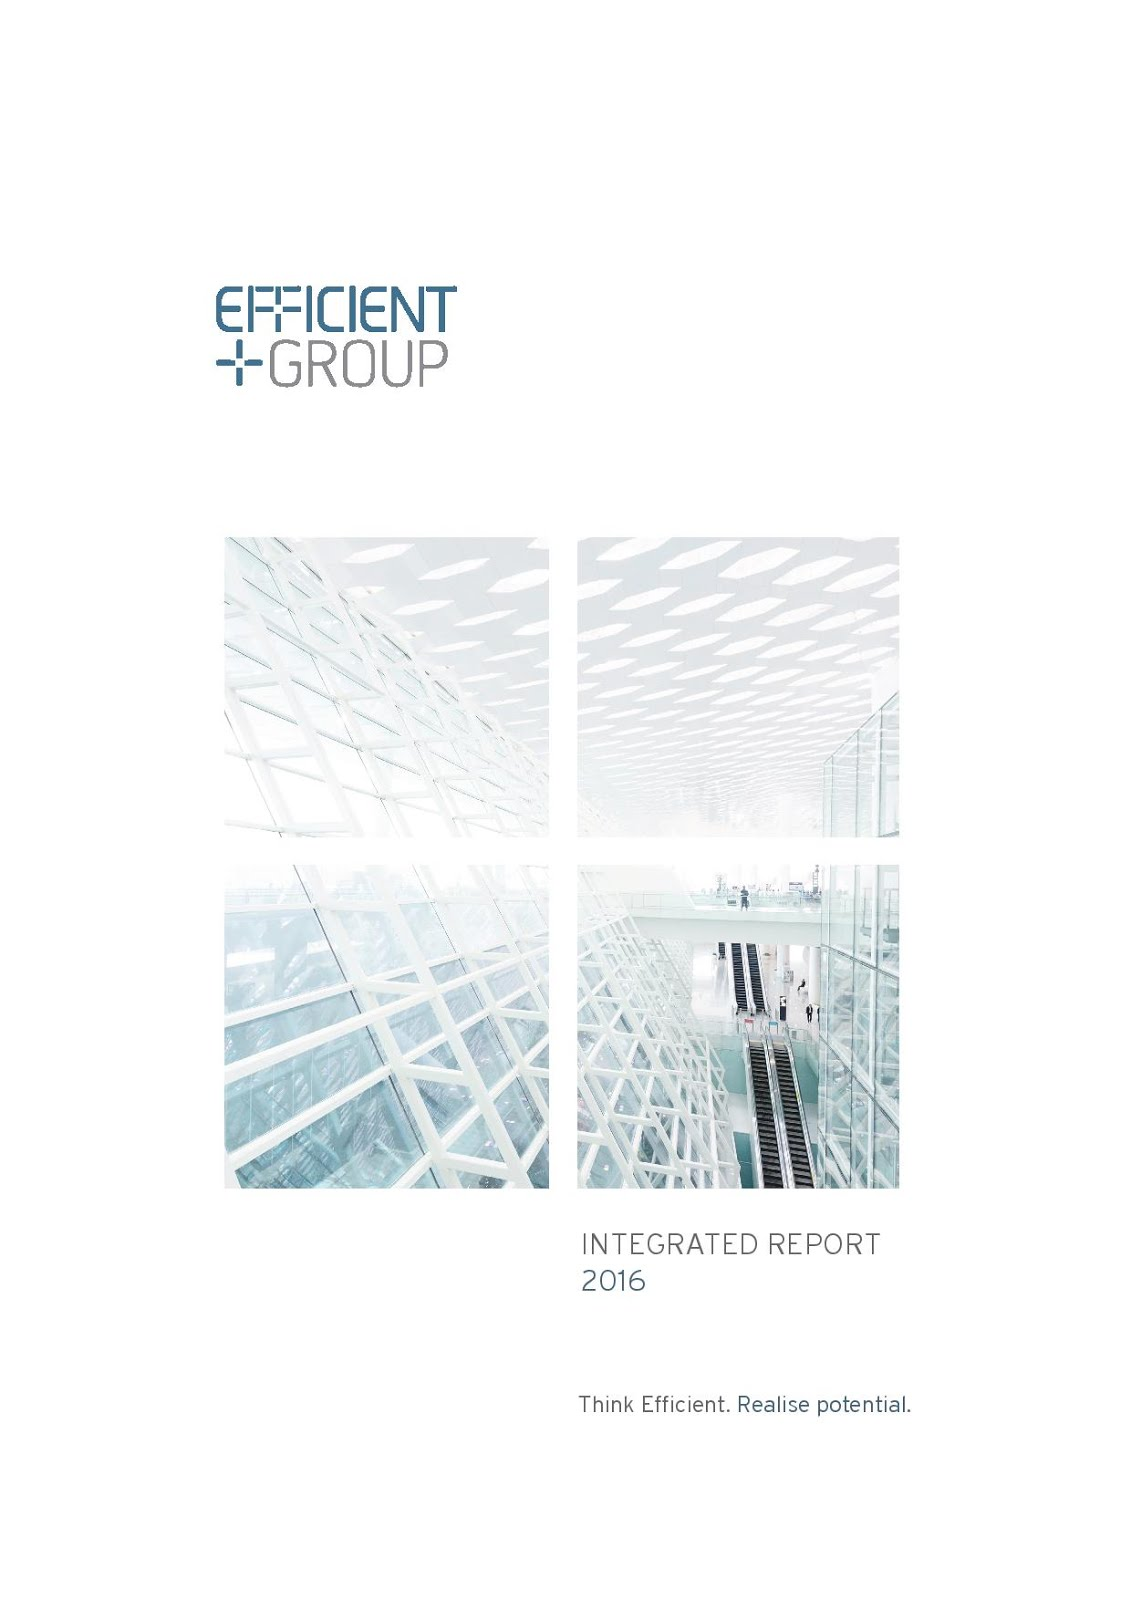 Efficient Group Integrated Annual Report